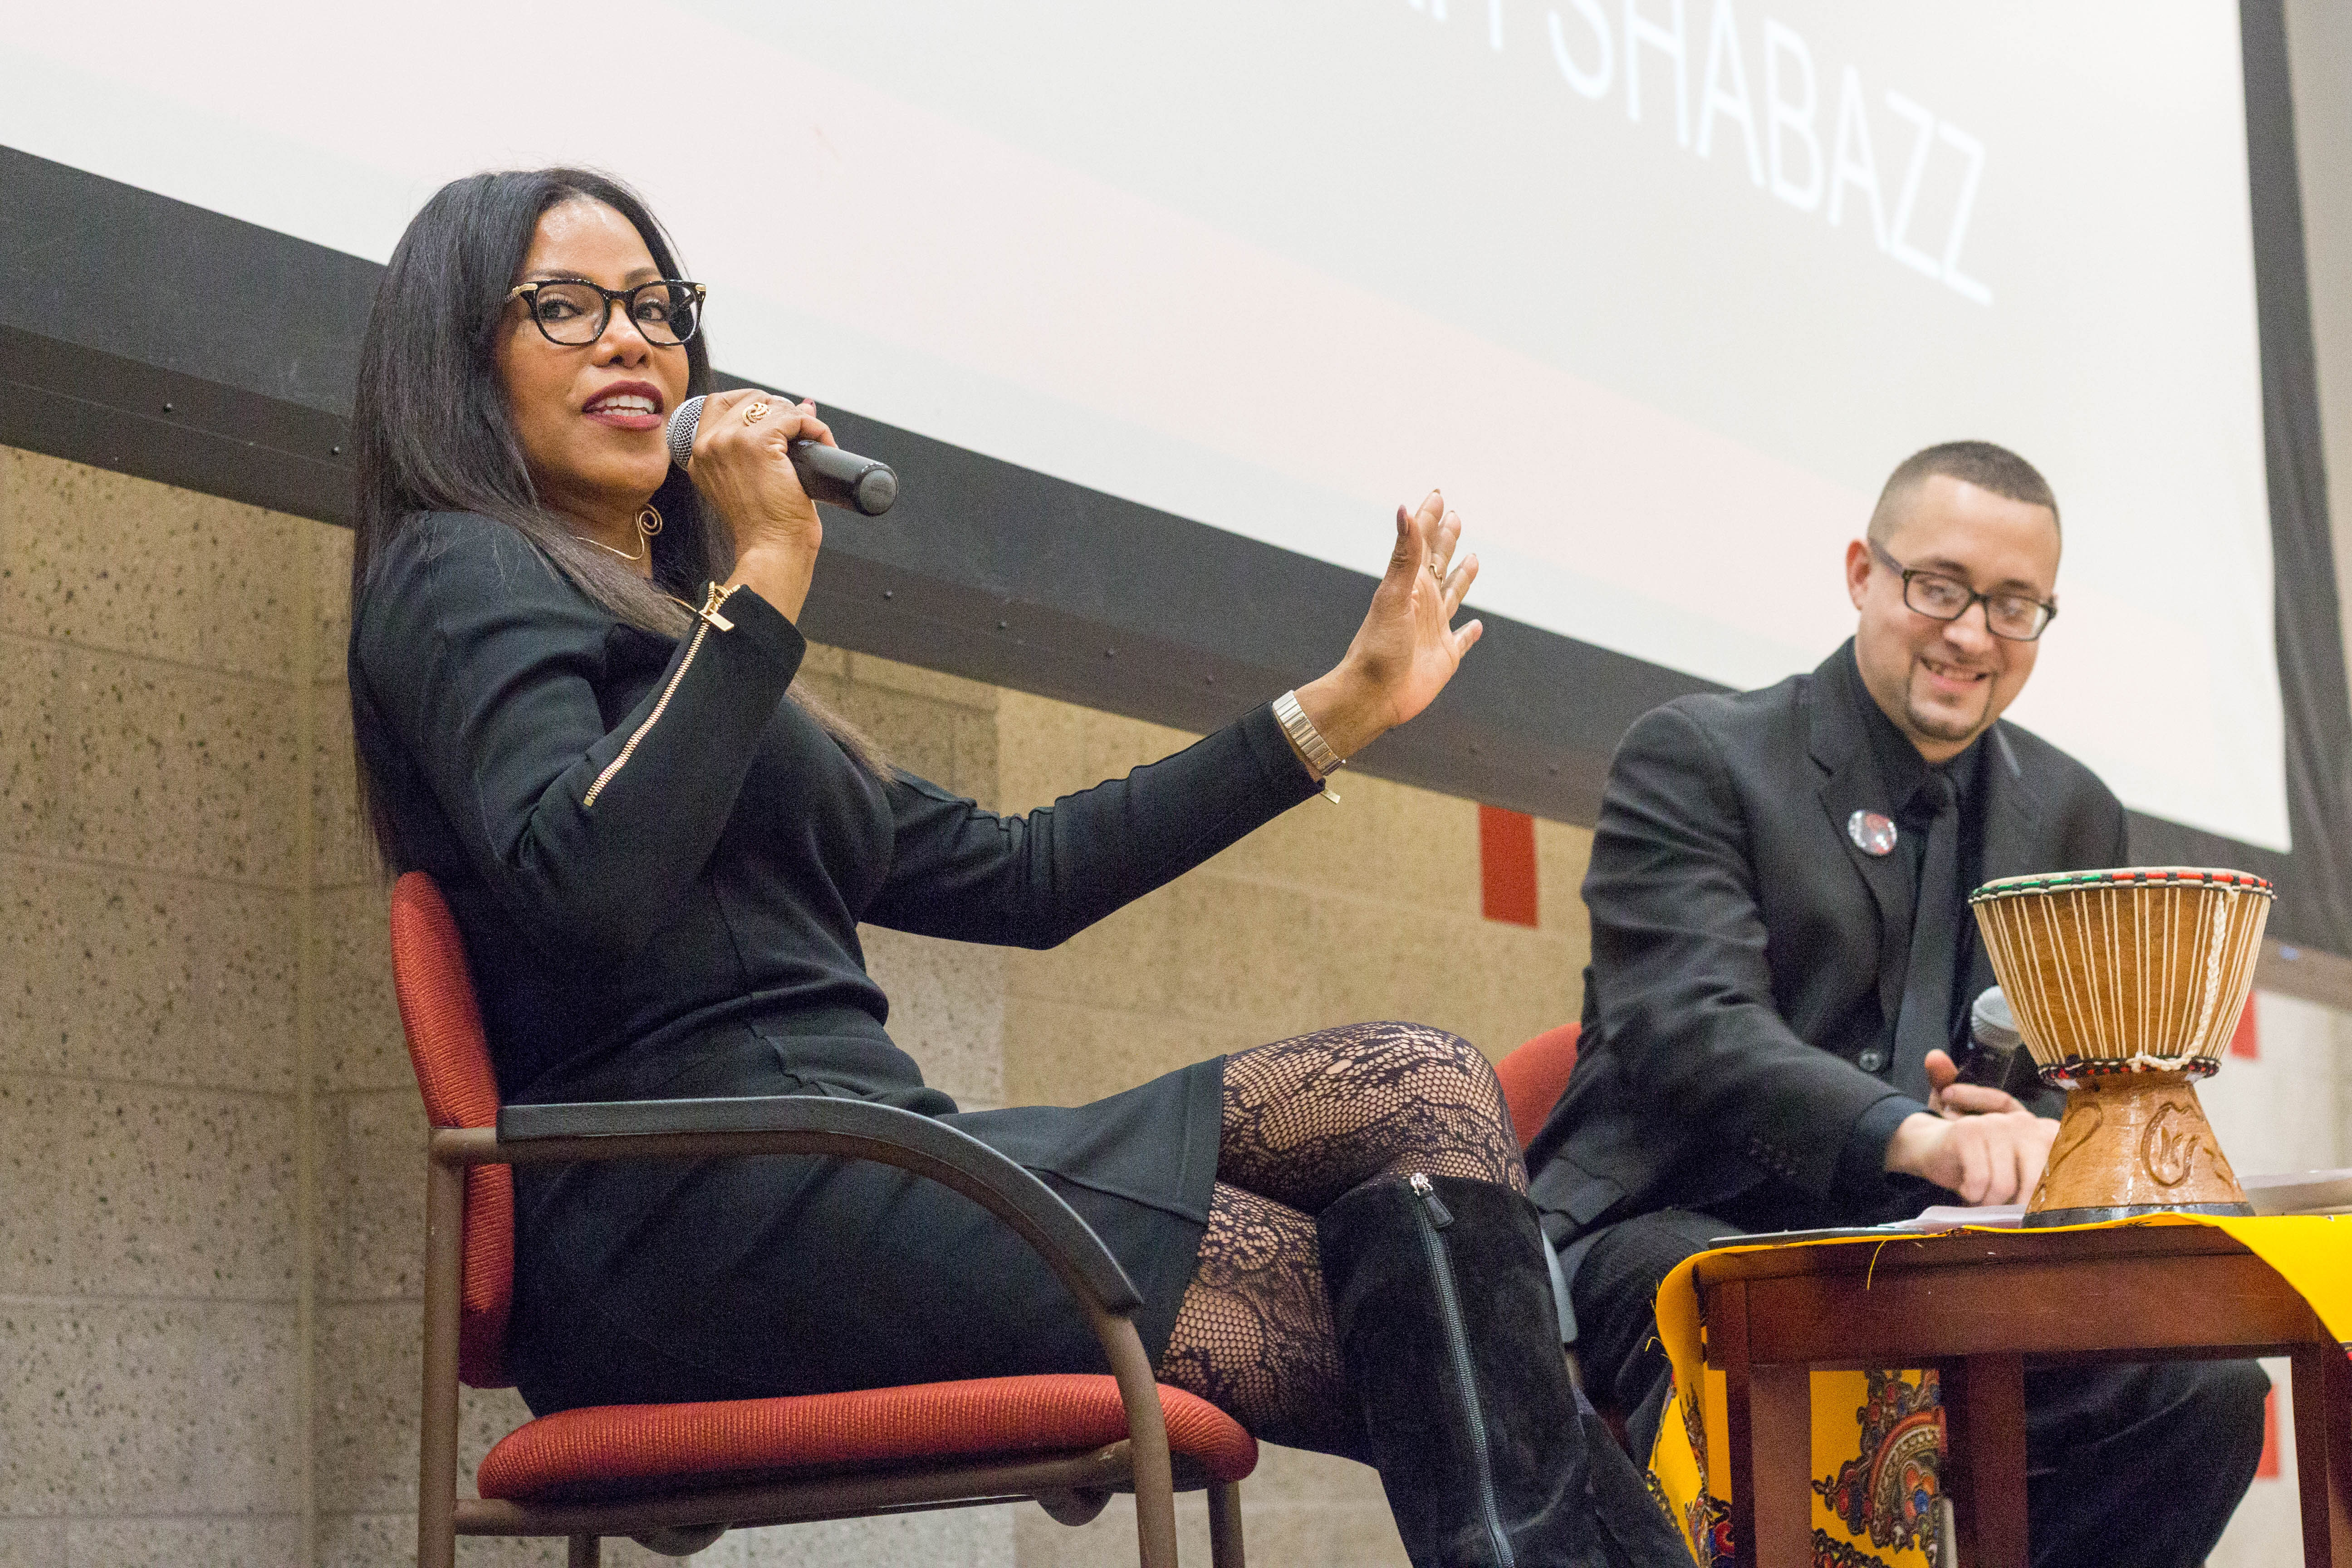 Activist Ilyasah Shabazz, the daughter of Malcolm X, was interviewed by Africana Studies Professor Zebulon Miletsky.